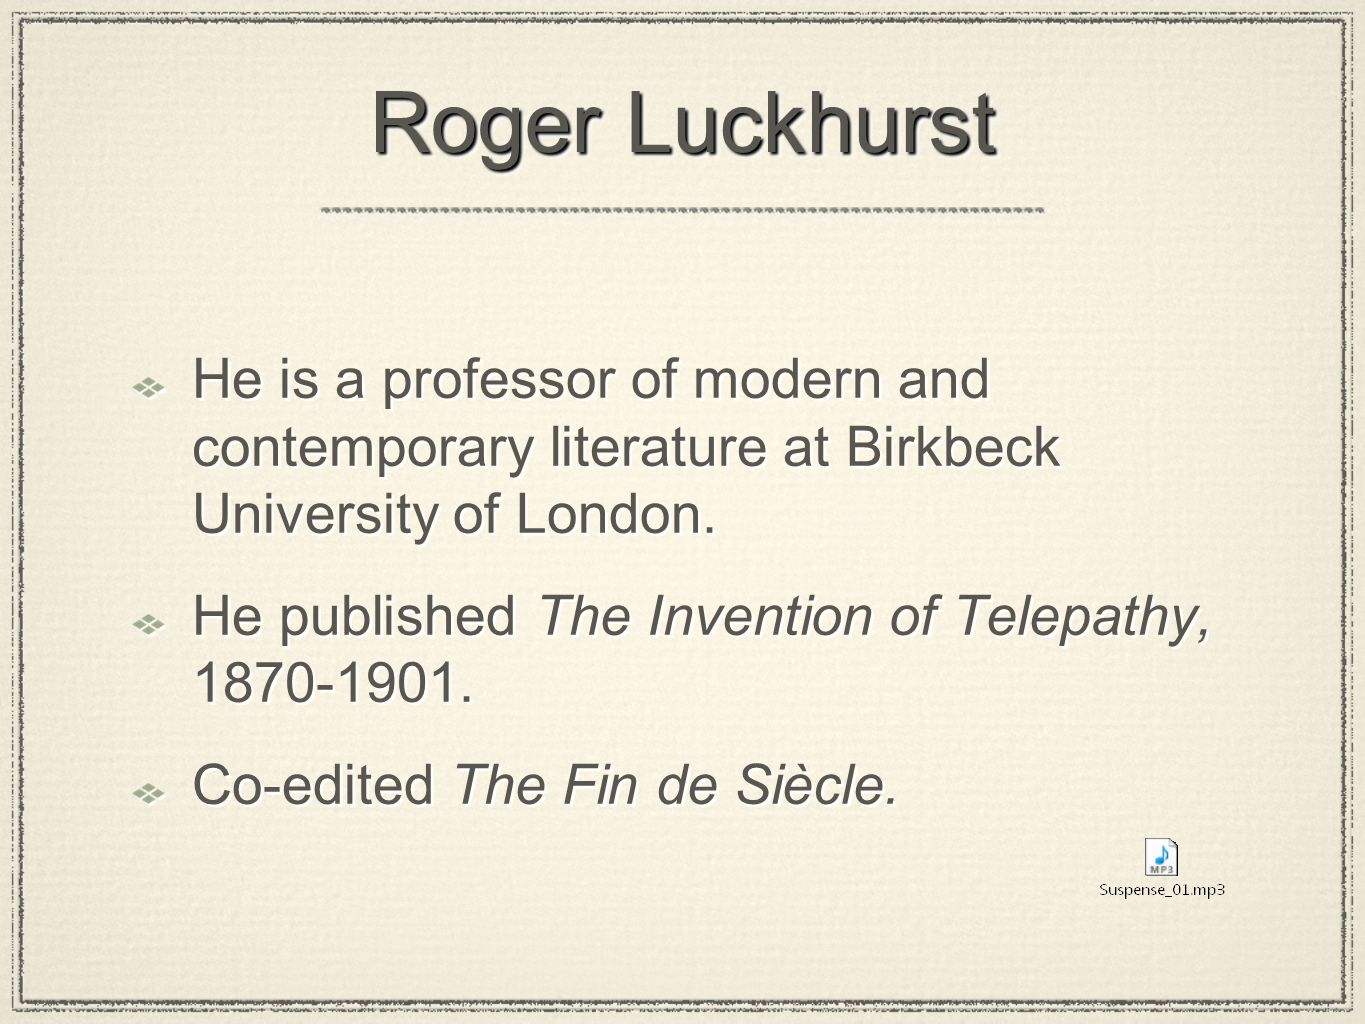 Roger Luckhurst He is a professor of modern and contemporary literature at Birkbeck University of London.